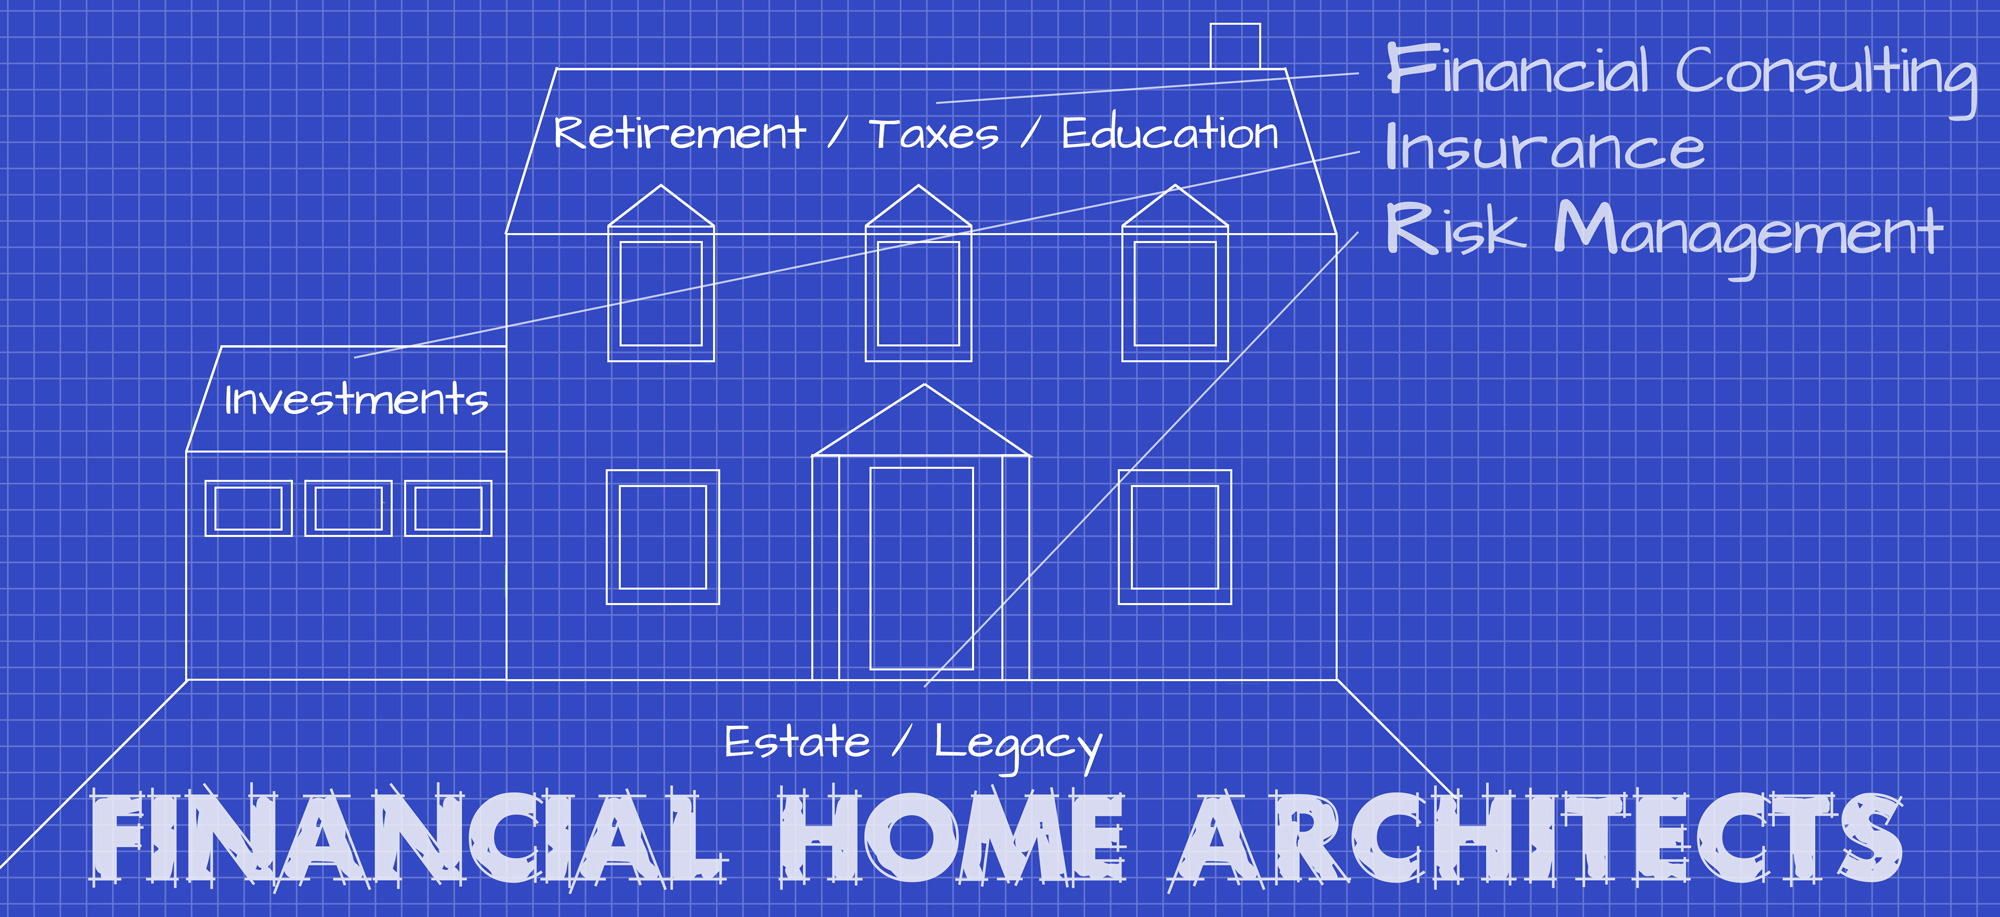 Financial home architects our process the firm insurance and financial home architects blueprint financial consulting retirement taxes education insurance malvernweather Gallery